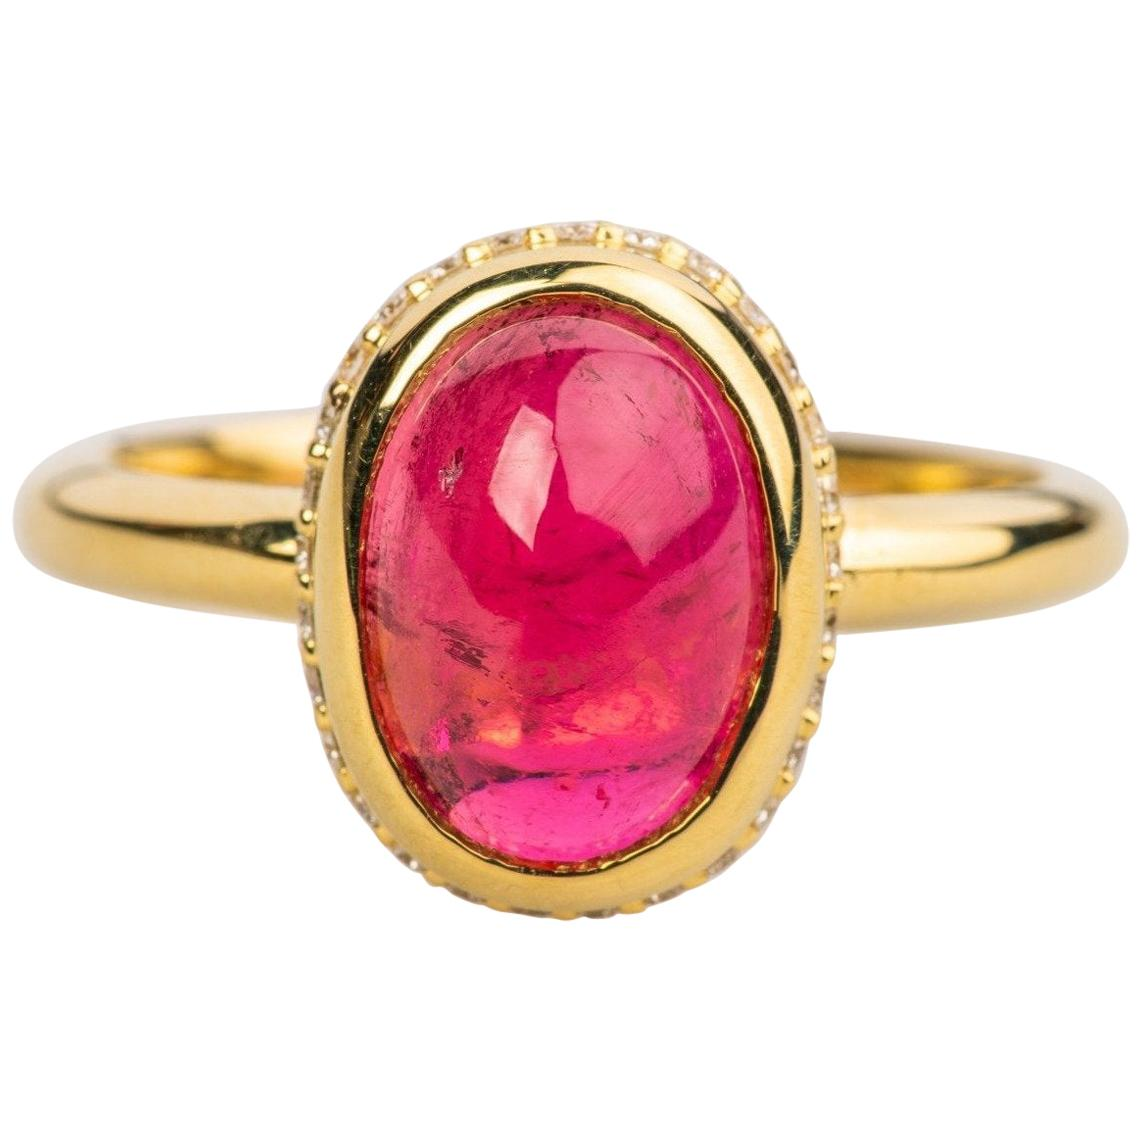 18k Yellow Gold Ring with an Oval Red Tourmaline Cabochon and White Diamonds